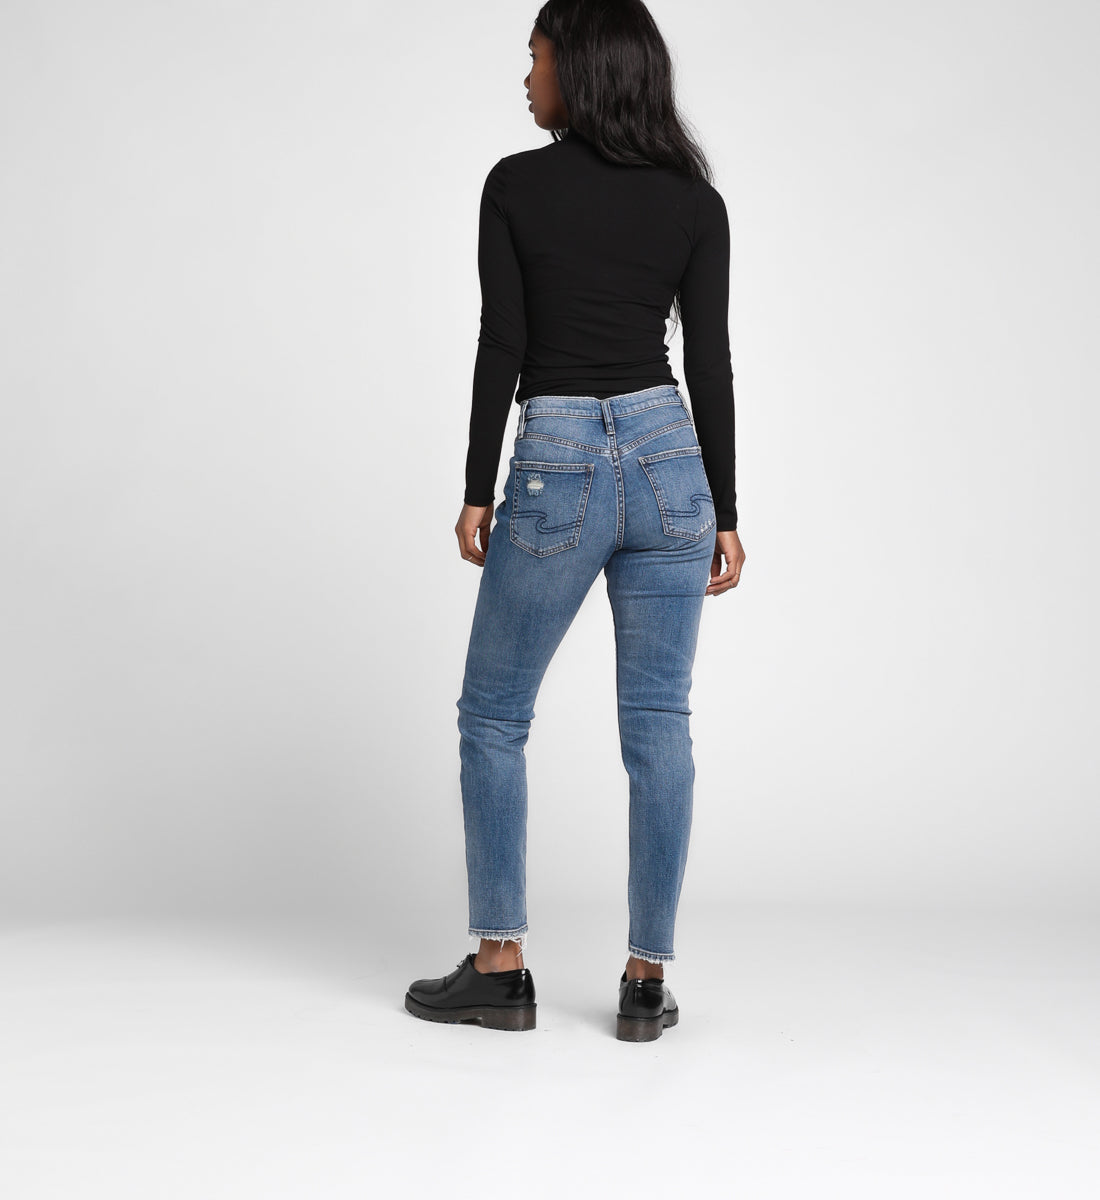 FRISCO TAPERED LEG JEAN